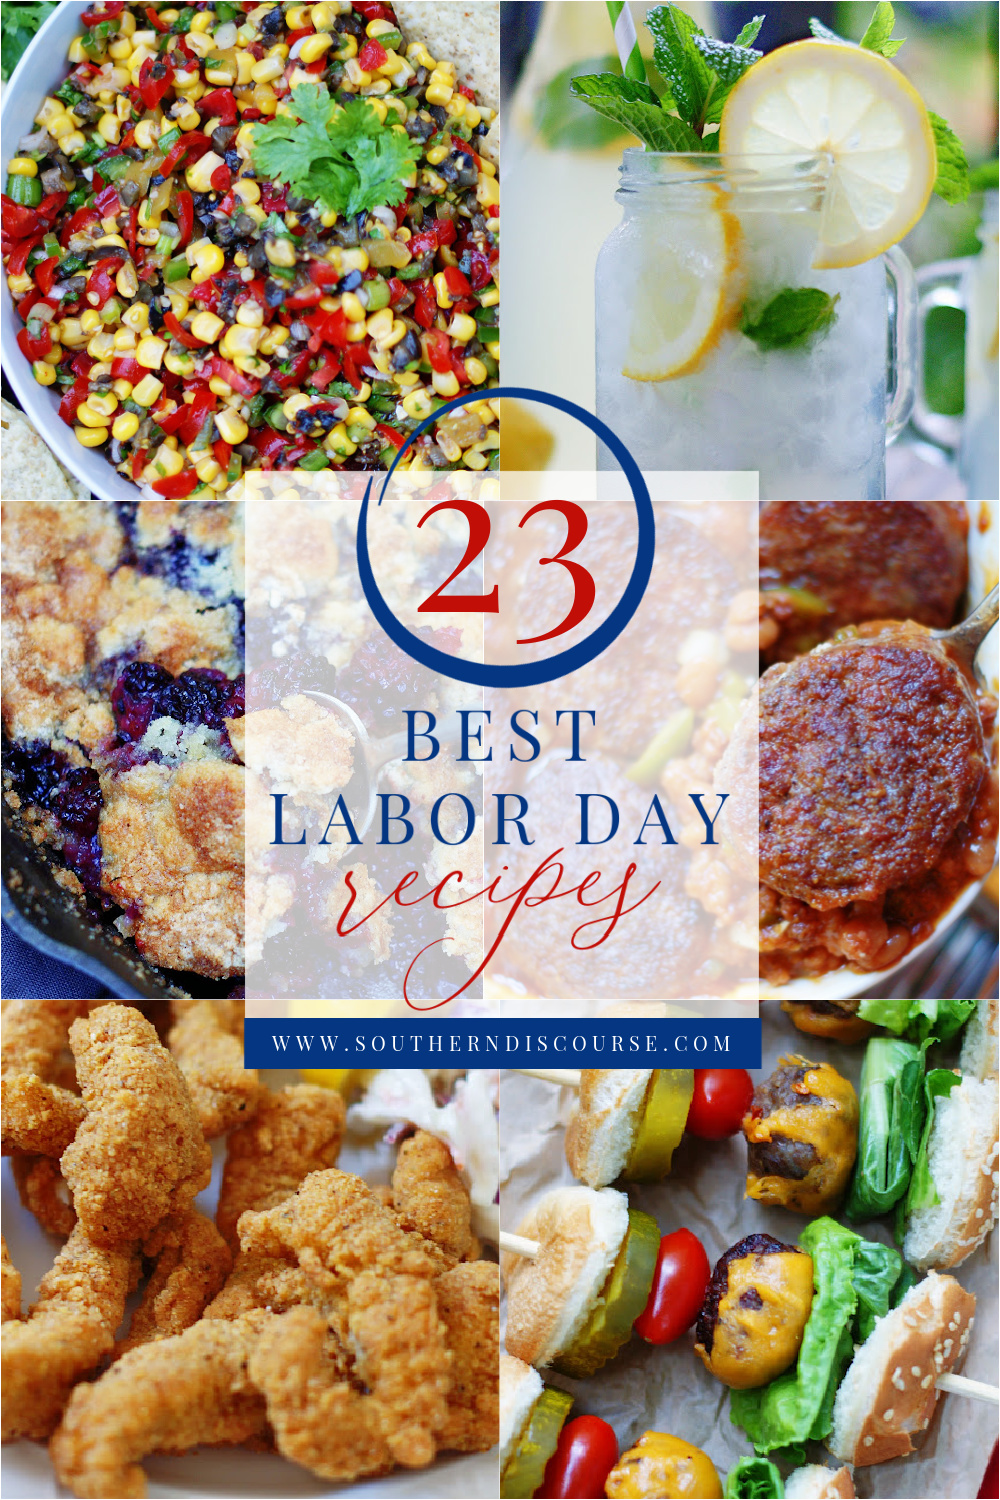 23 of the best Labor Day recipes for your cookout or get together.  From Dips to drinks, salads, sides, main dishes, even dessert, this collection has everything you need to celebrate the end of summer.